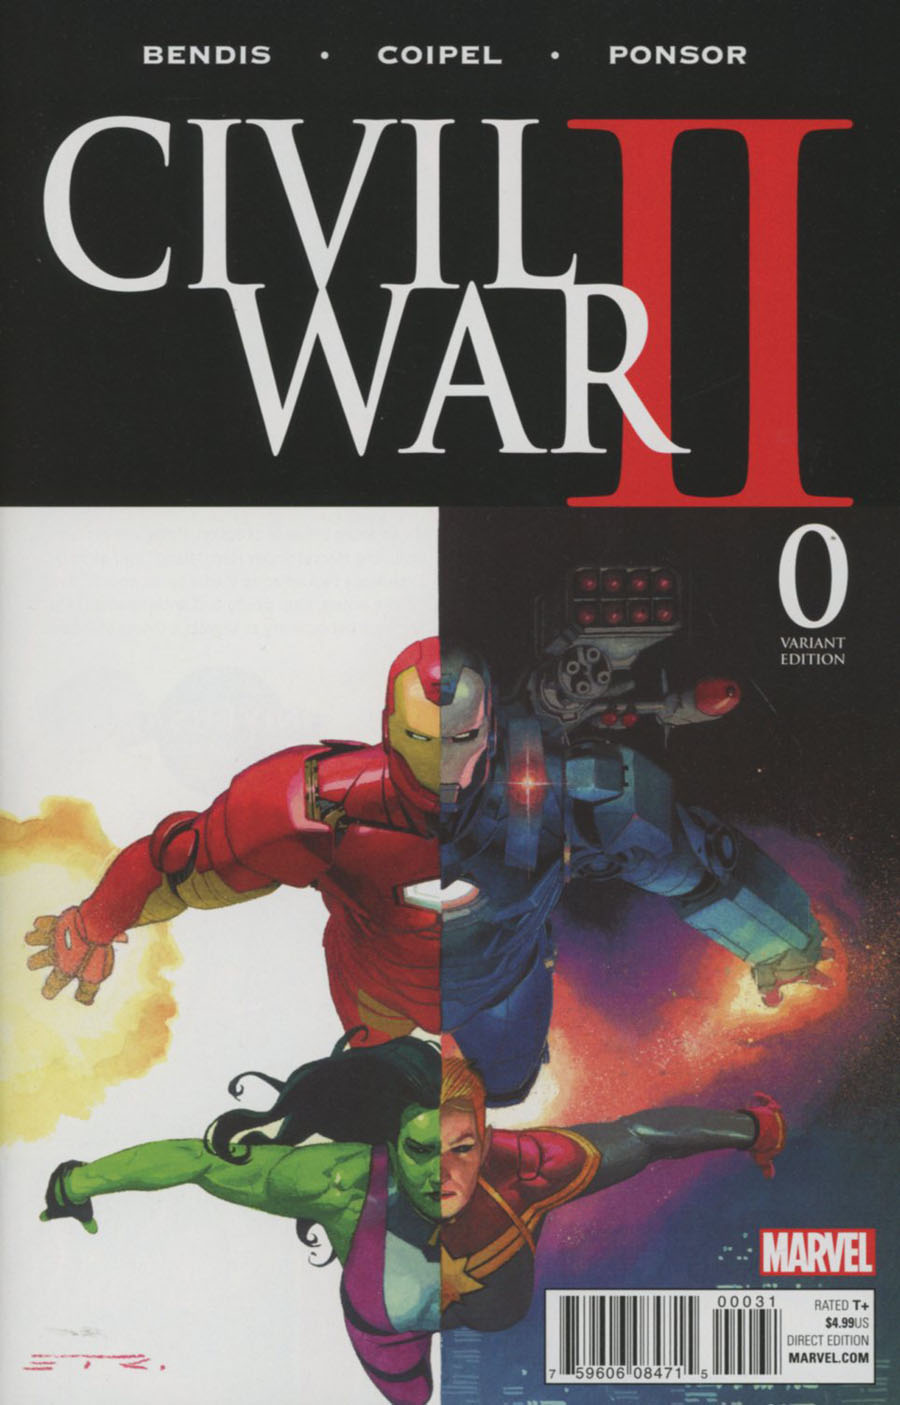 Civil War II #0 Cover C Variant Esad Ribic Cover (Road To Civil War II Tie-In)